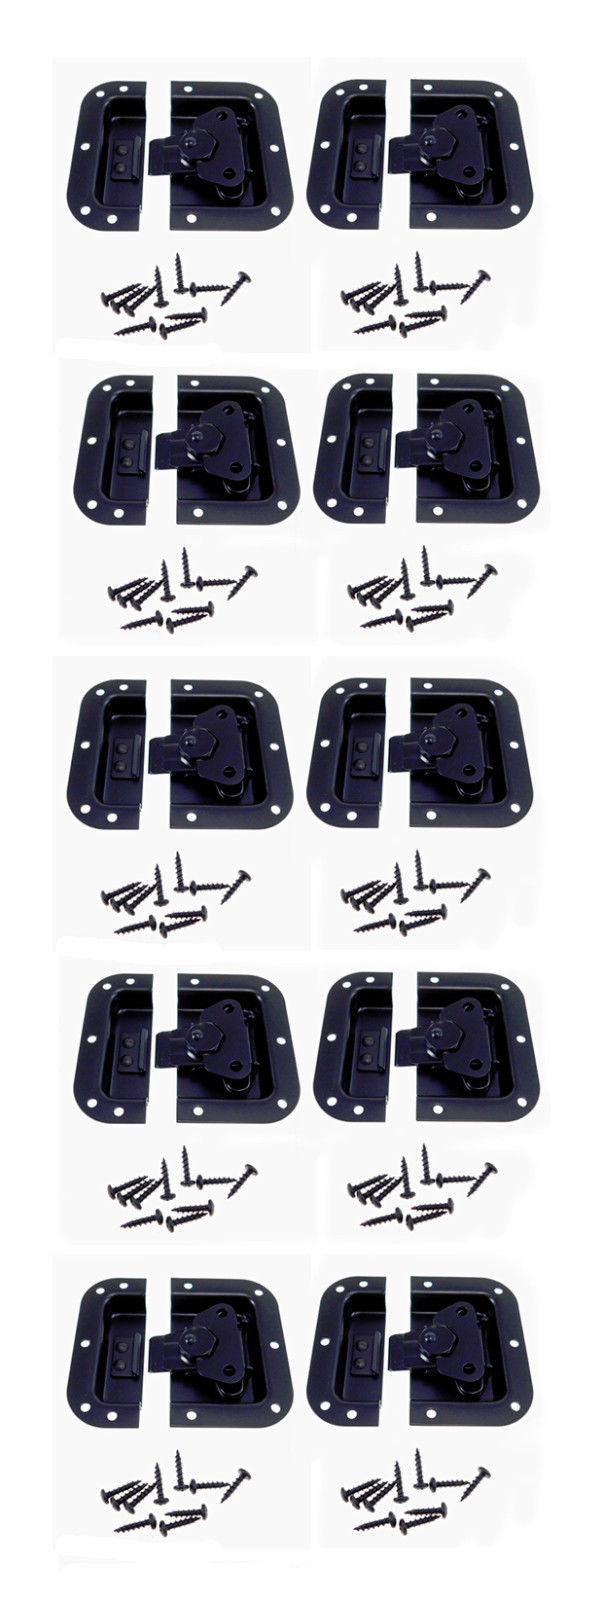 10 Pack Black Finish Medium Recessed Butterfly Latch Pedal Board Cases A3020BK